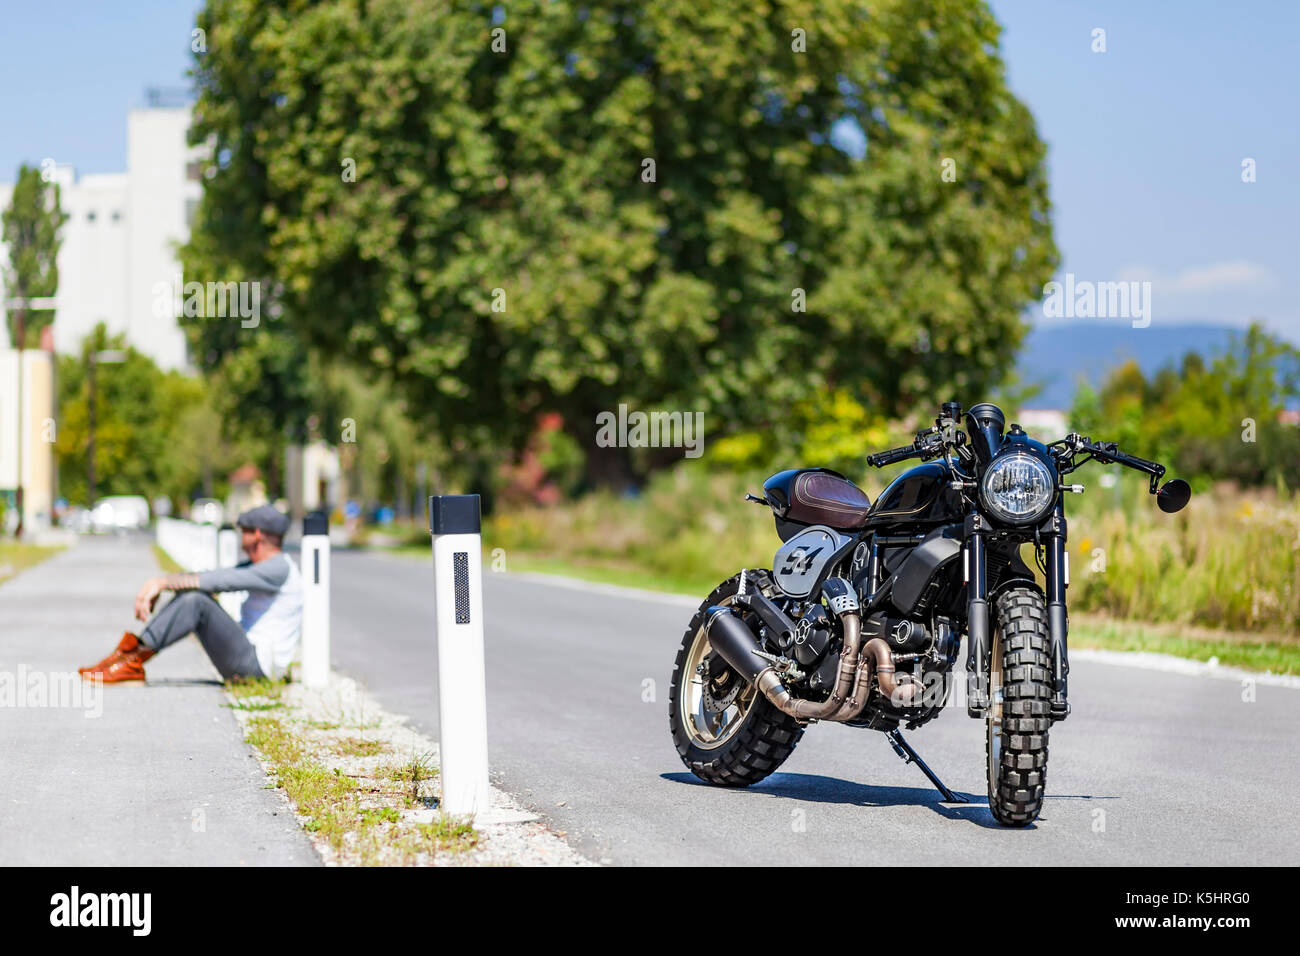 Cool looking motorcycle rider sitting near custom made scrambler style cafe racer - Stock Image